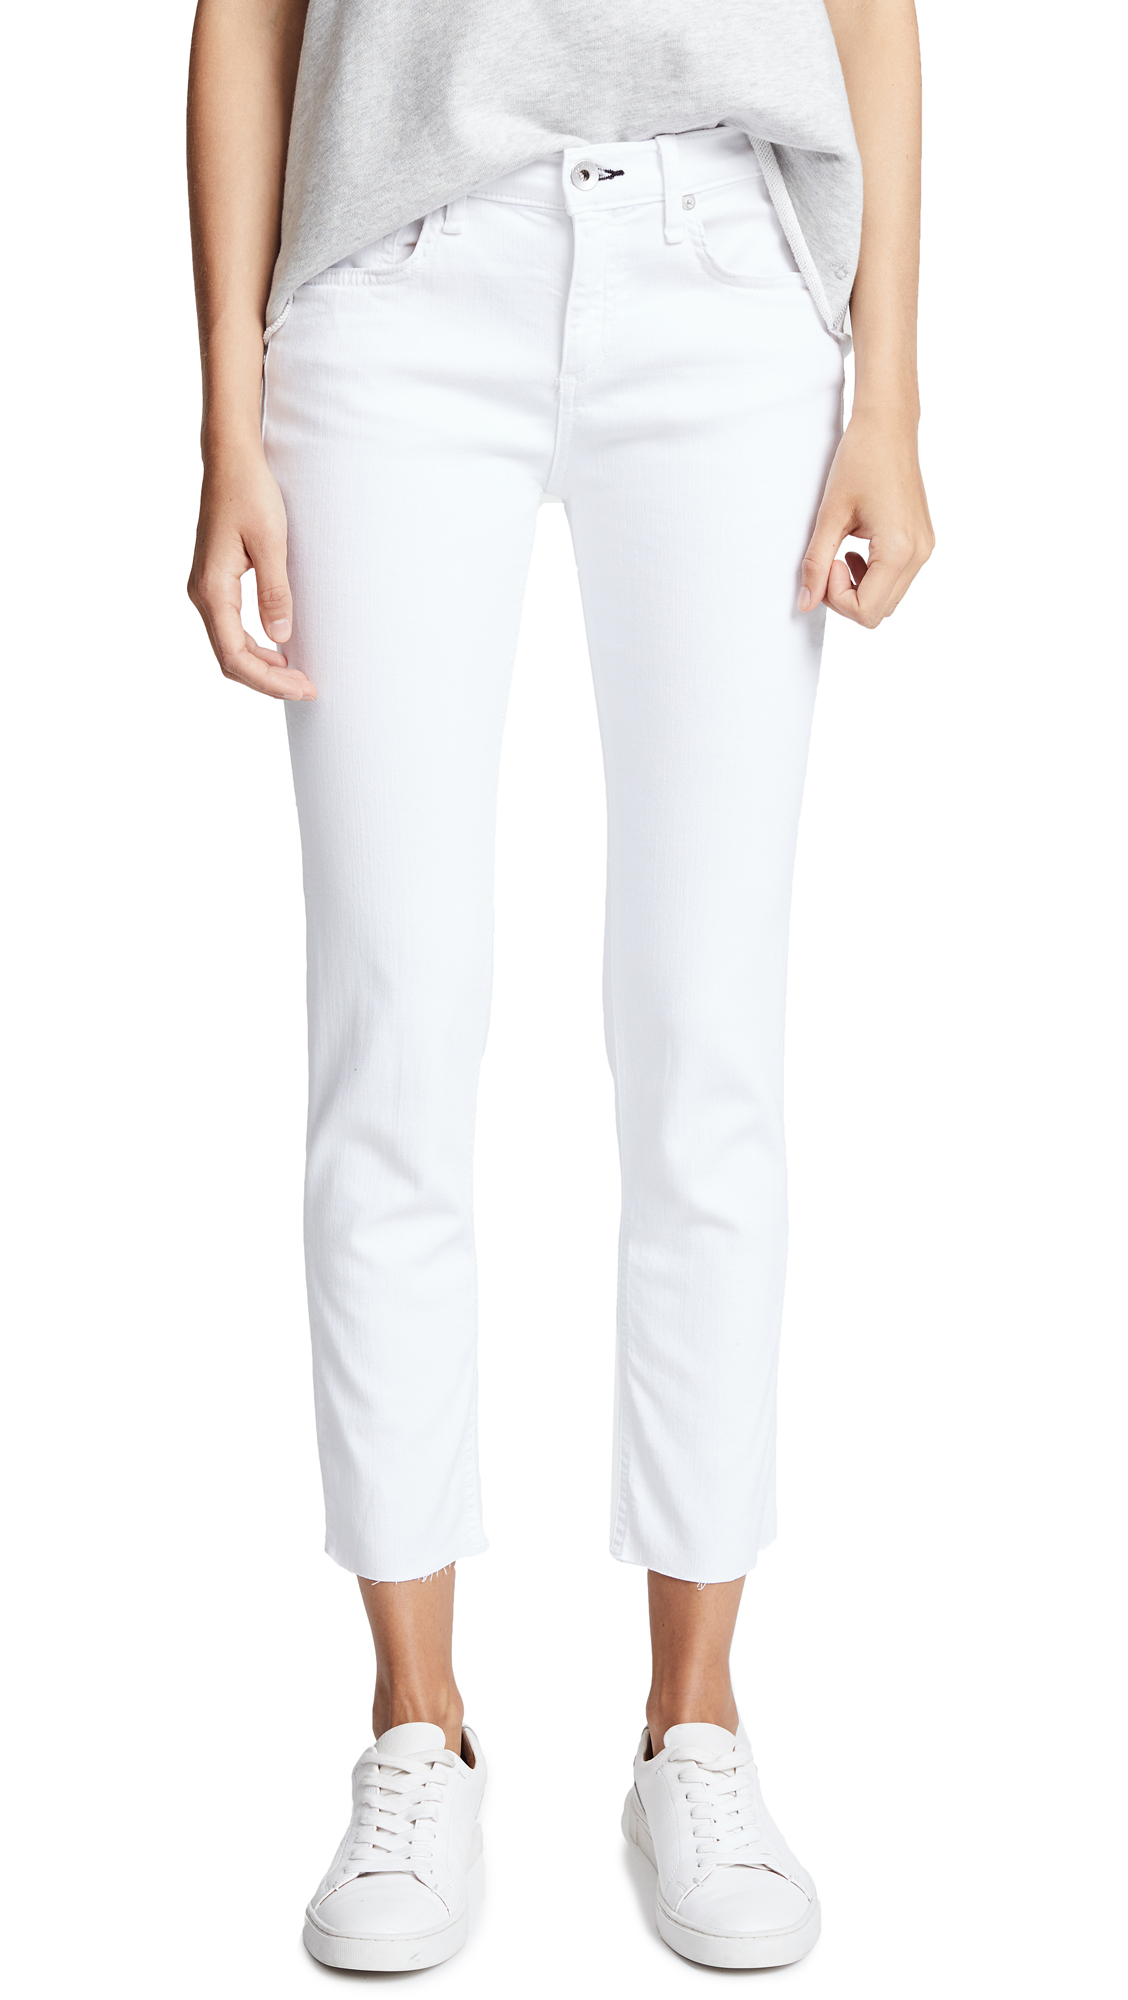 Rag & Bone/JEAN The Ankle Dre Slim BF Jeans In White